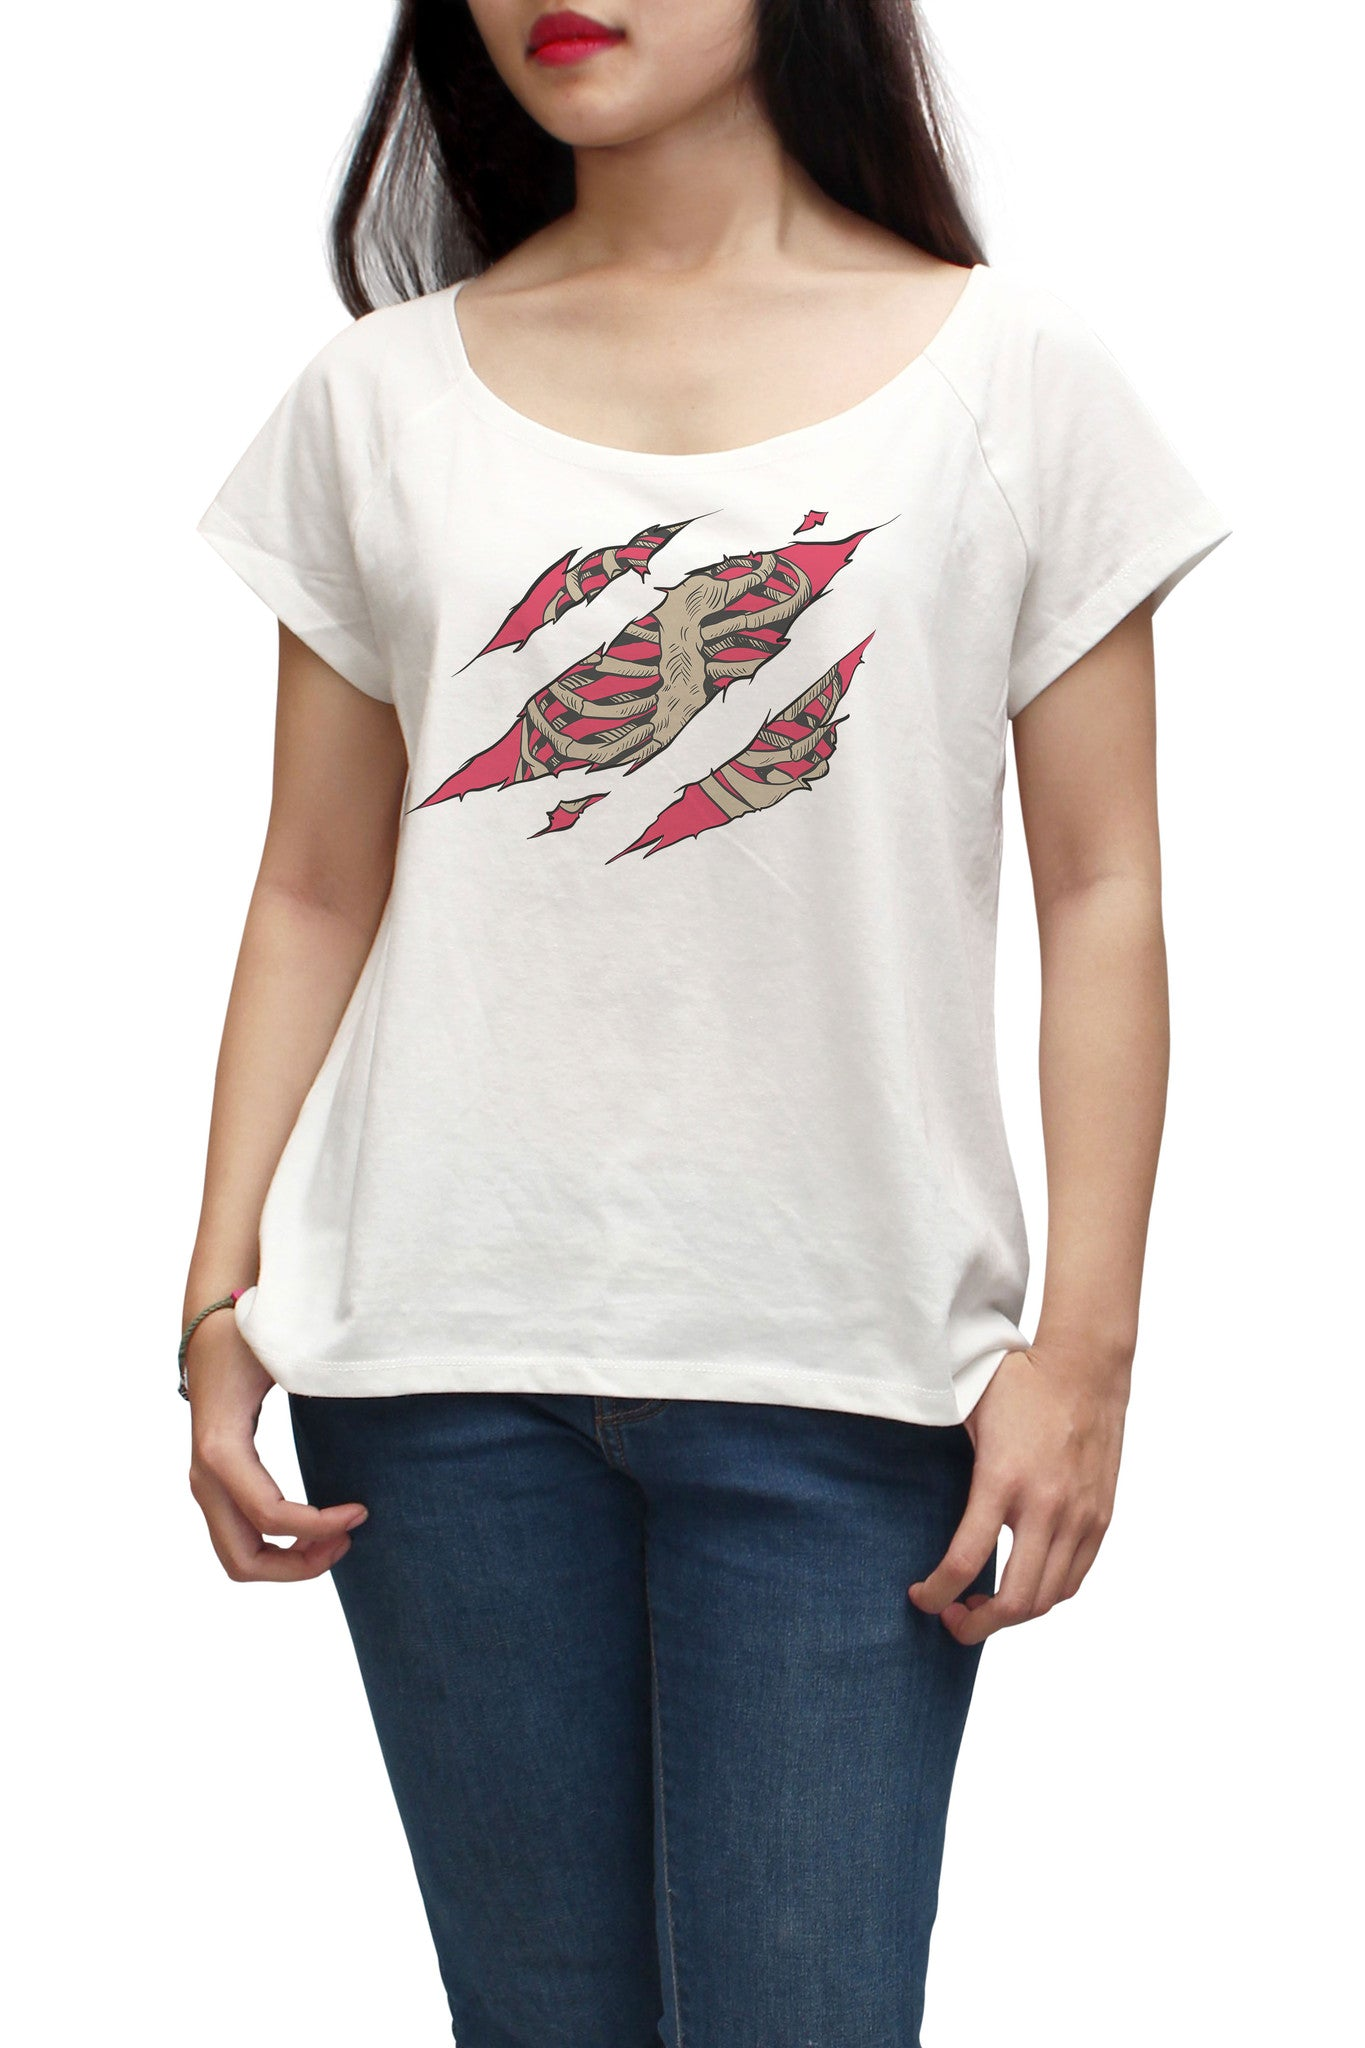 Women A Chest Bones Scratch Printed Short Sleeves T-shirt WTS_01